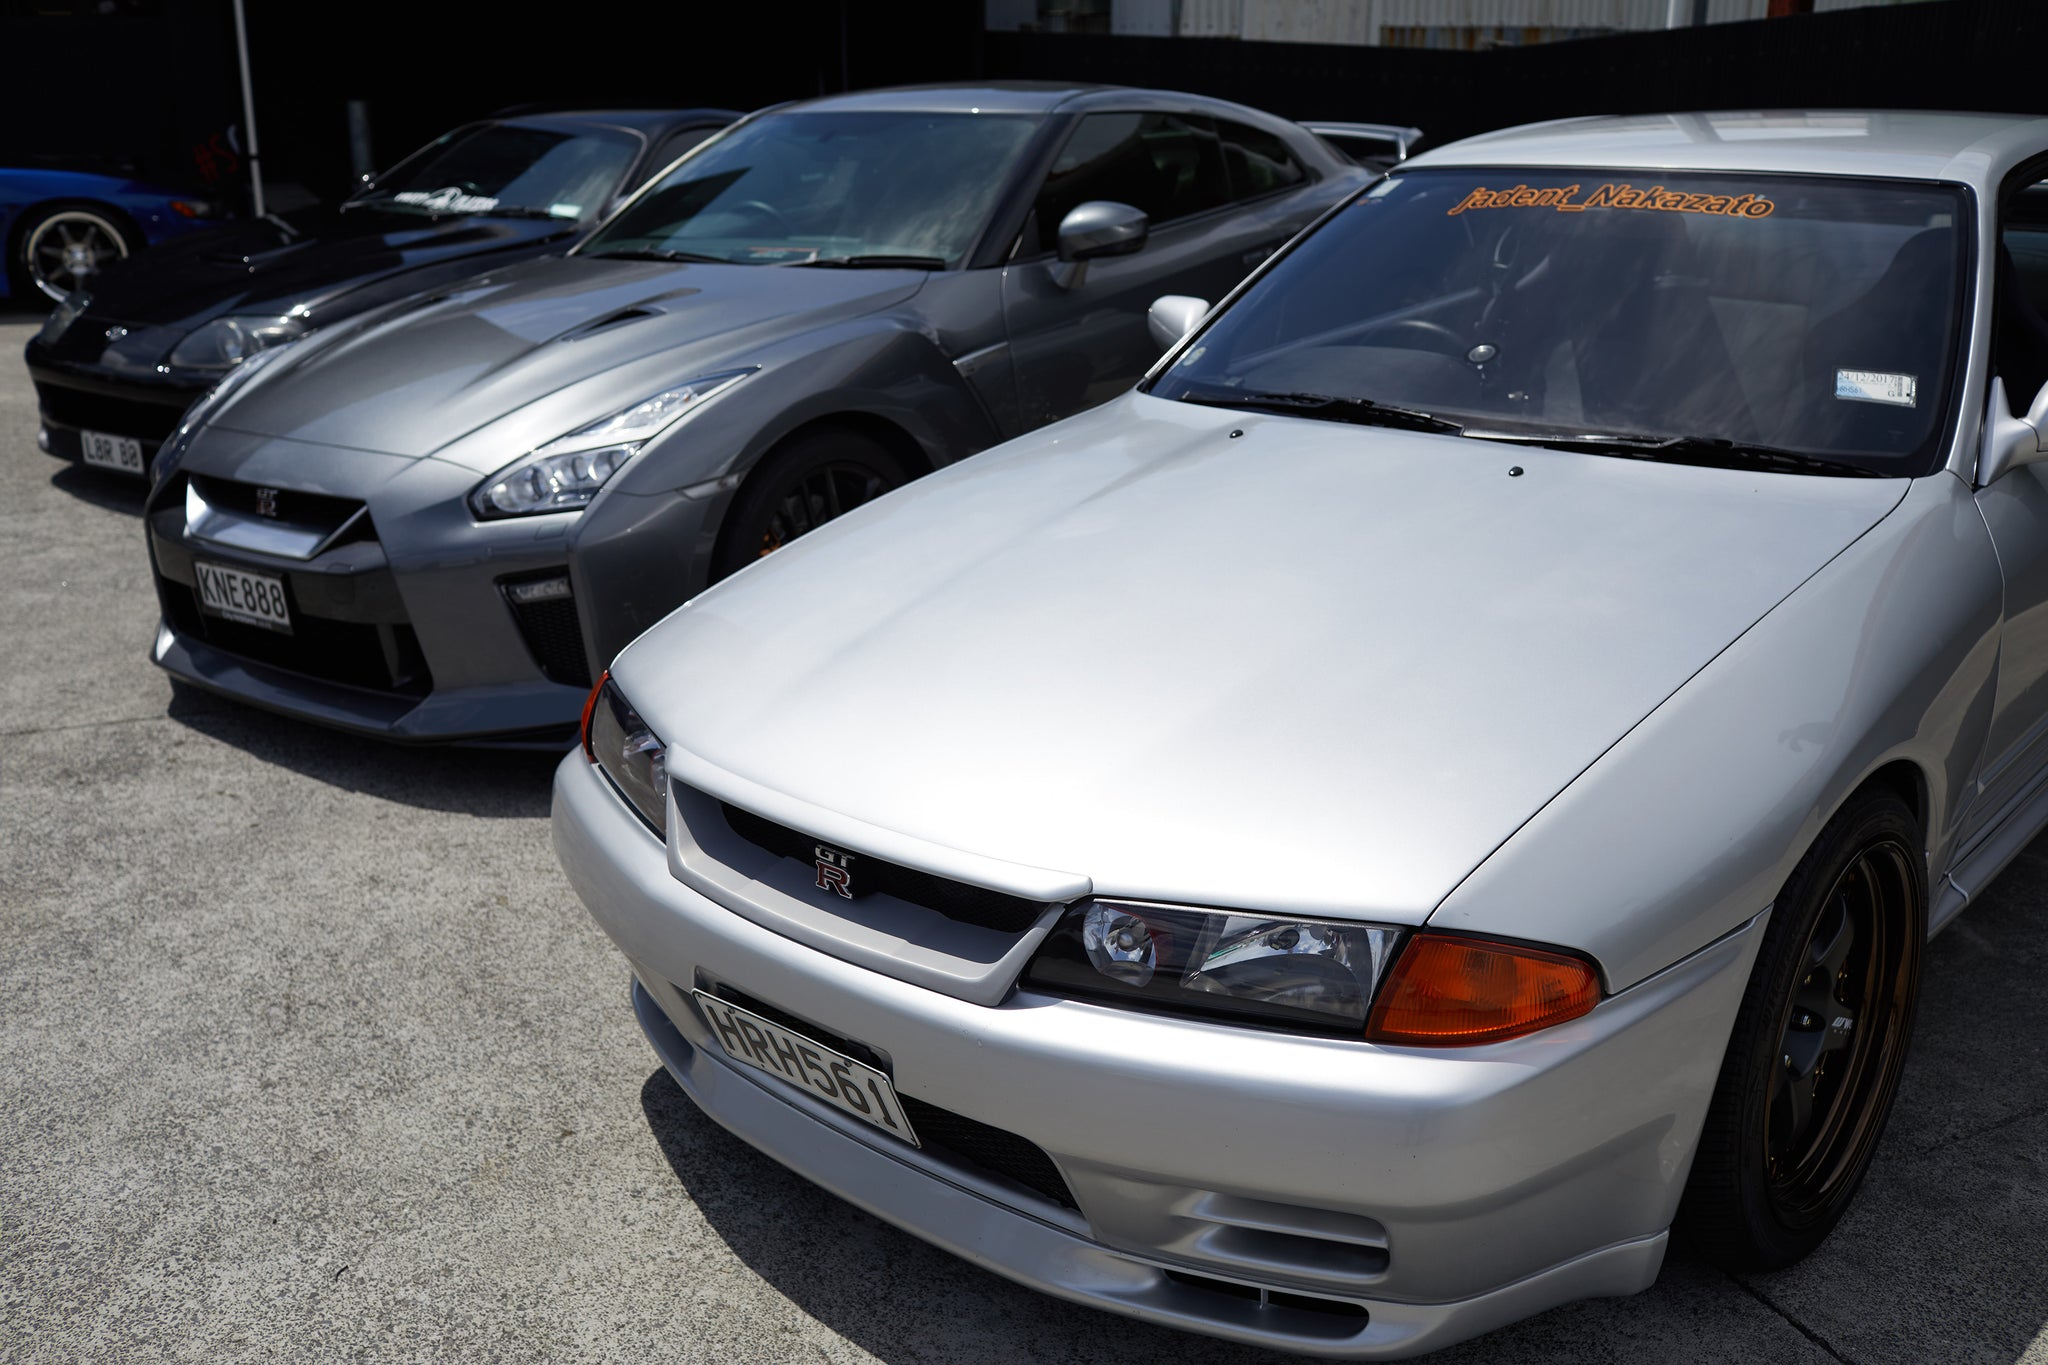 Nissan GTR 32 and 34 at Scarles